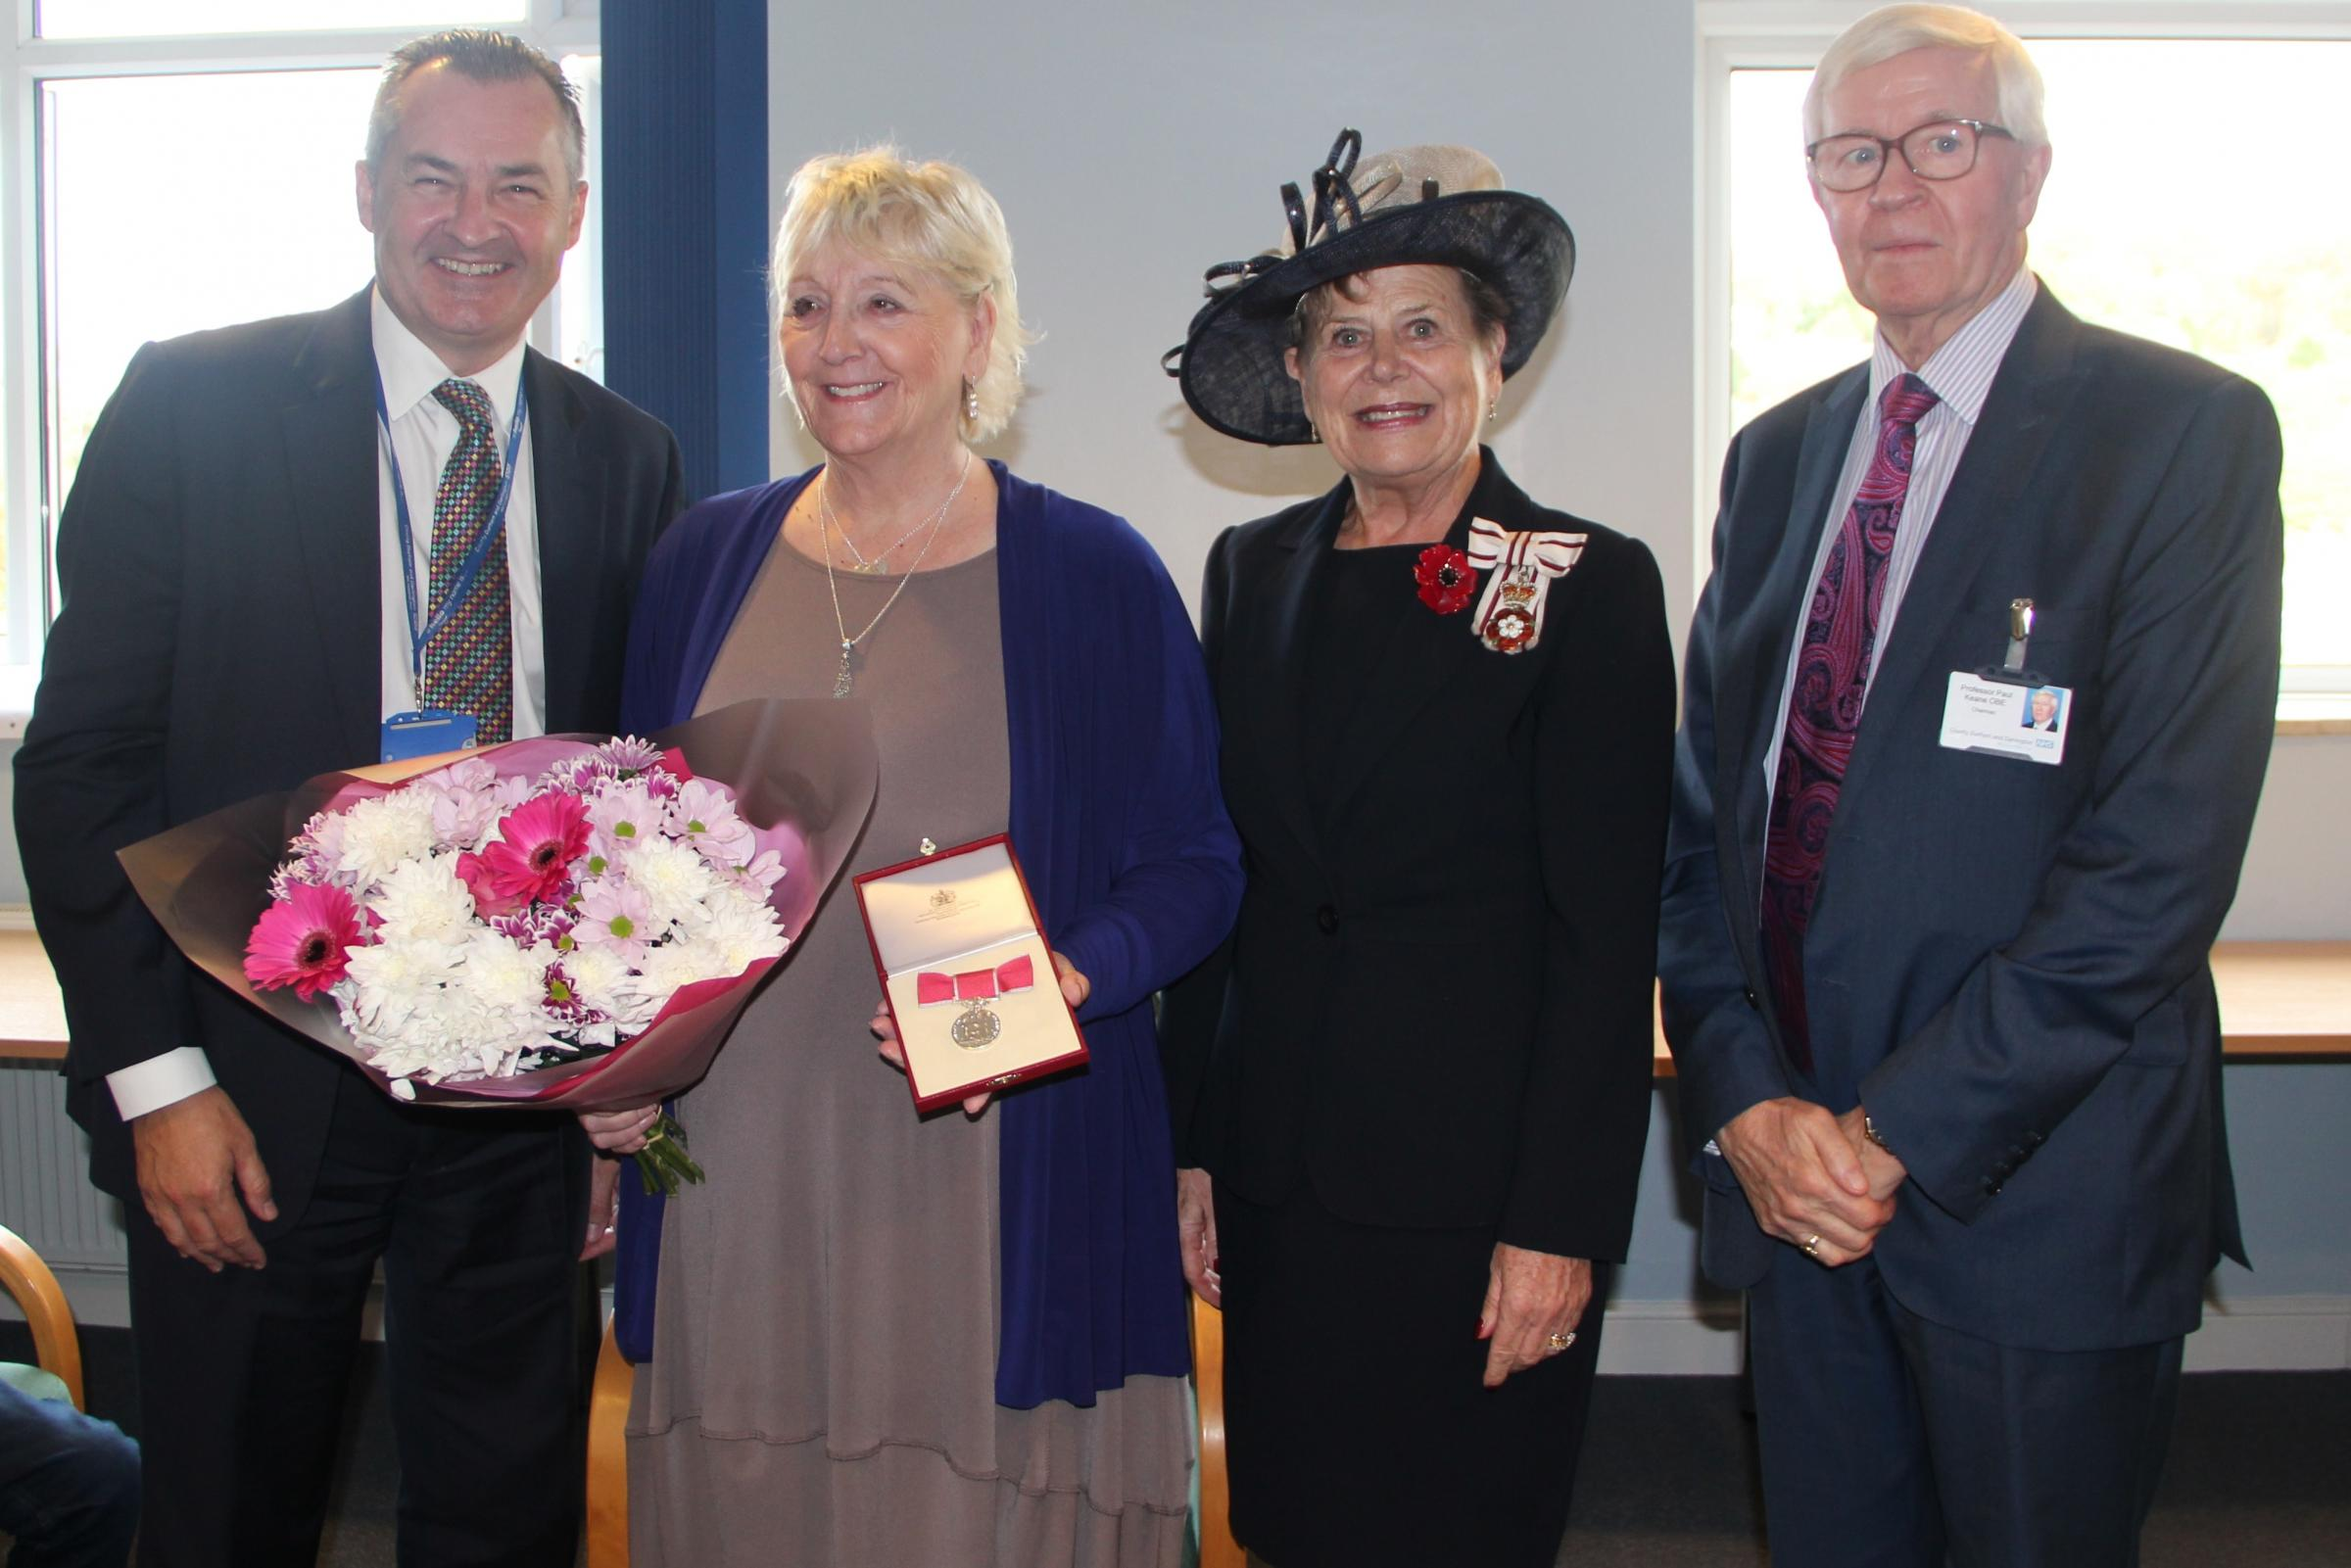 MEDICAL HERO: Mary Richardson, pictured with Mrs Sue Snowdon, Her Majesty's Lord-Lieutenant of County Durham, Noel Scanlon, director of nursing & Professor Paul Keane OBE, Chairman, County Durham & Darlington NHS Foundation Trust